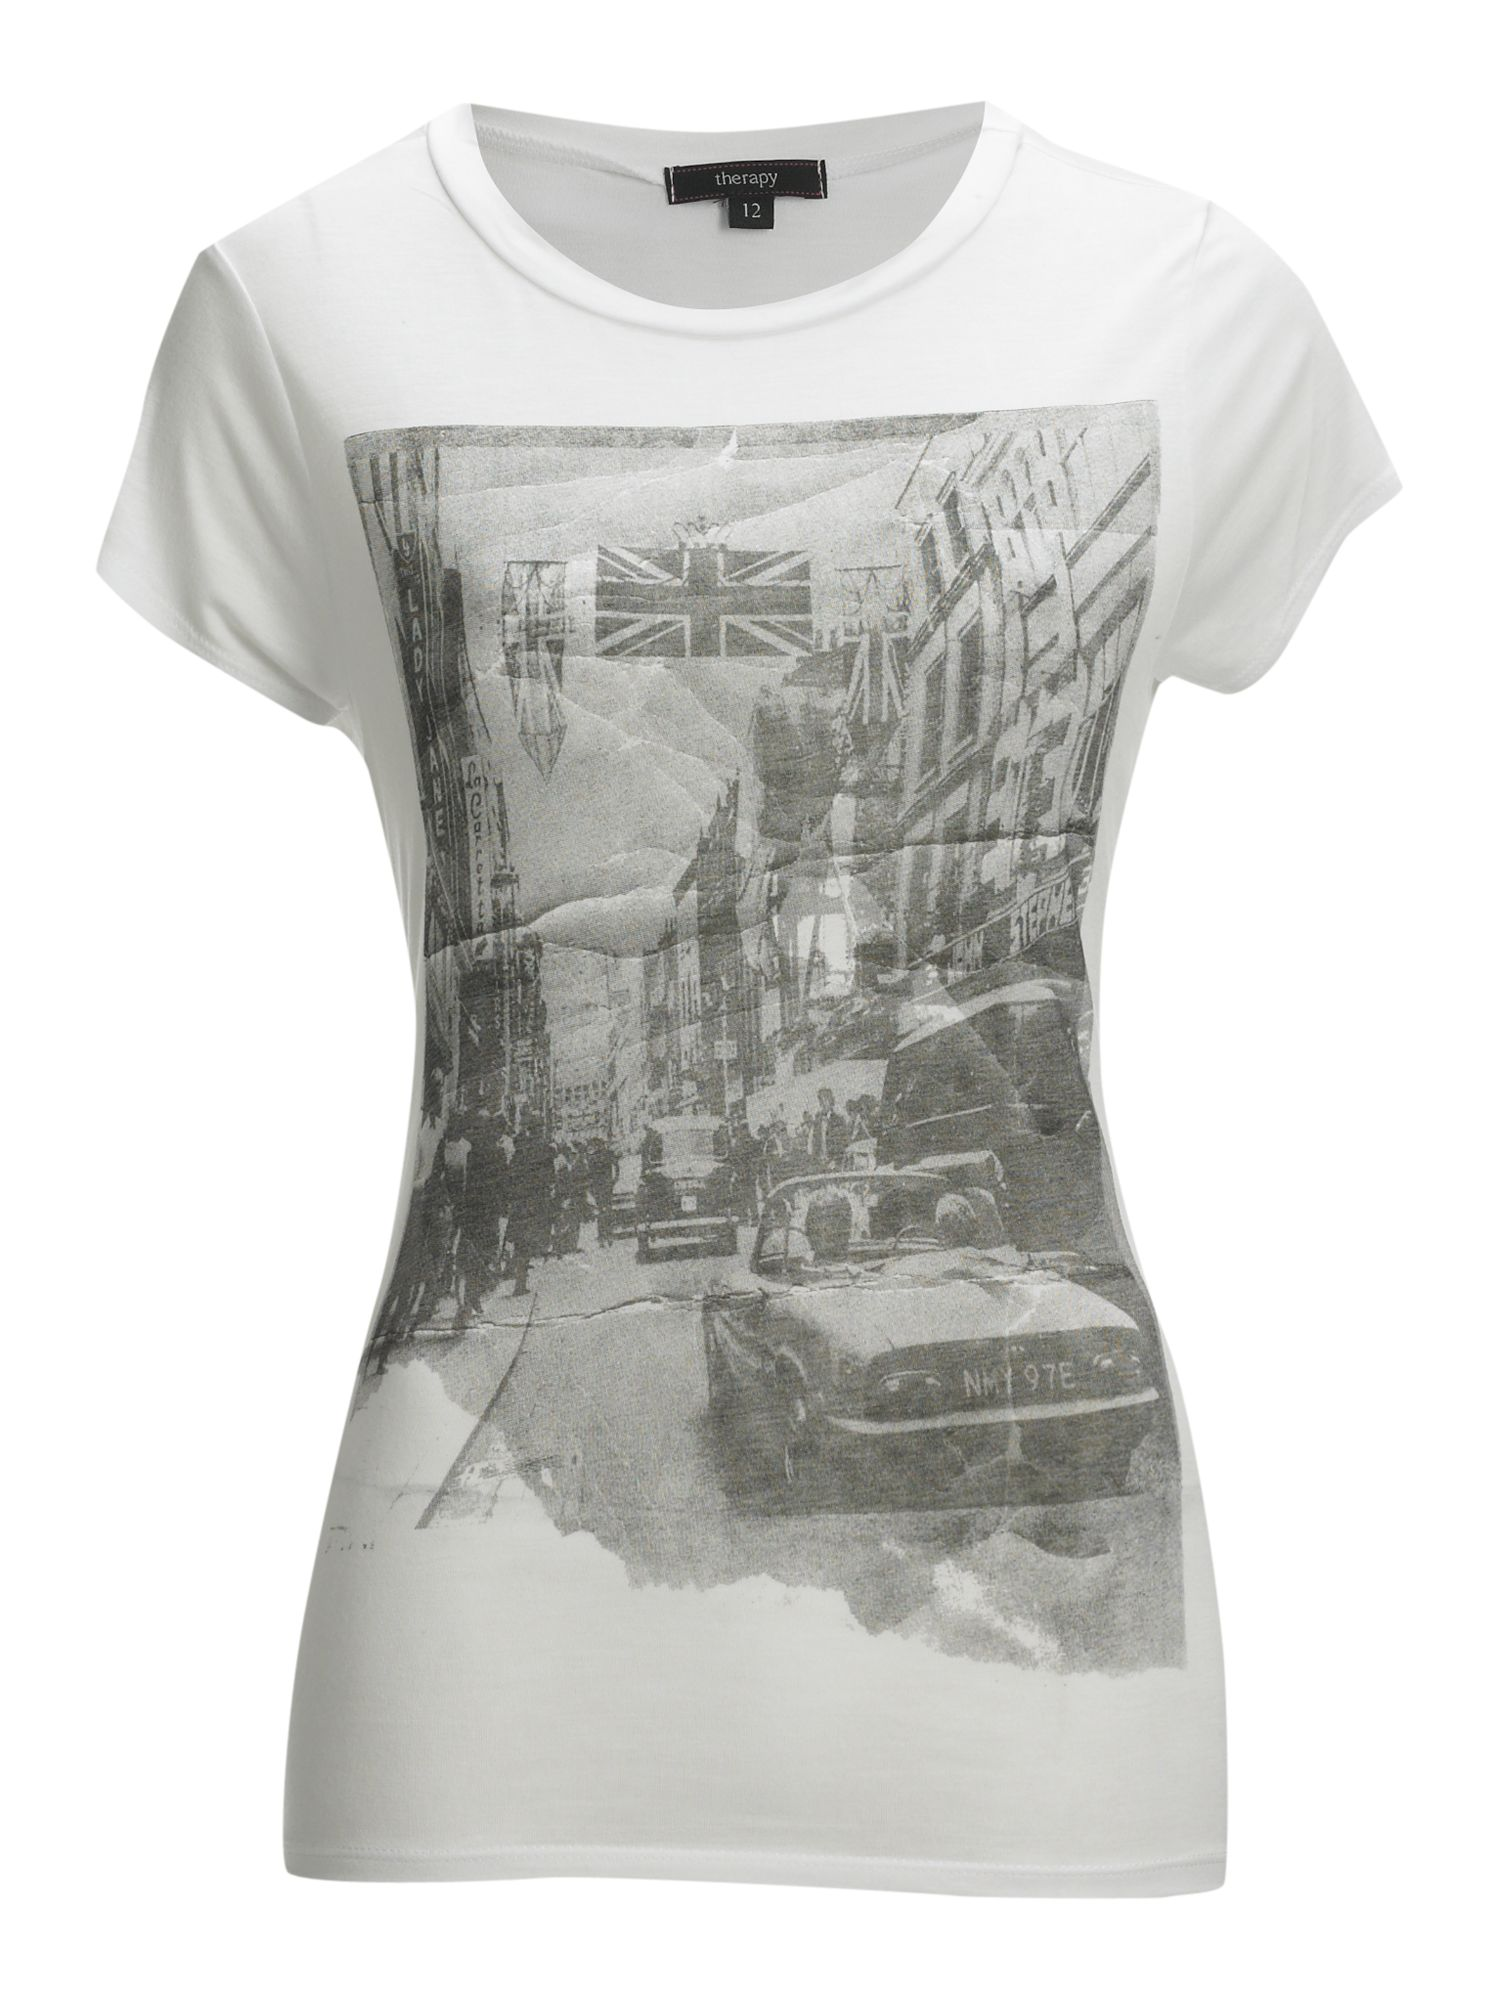 Therapy Carnaby print t-shirt - White 12,12,8,8 product image